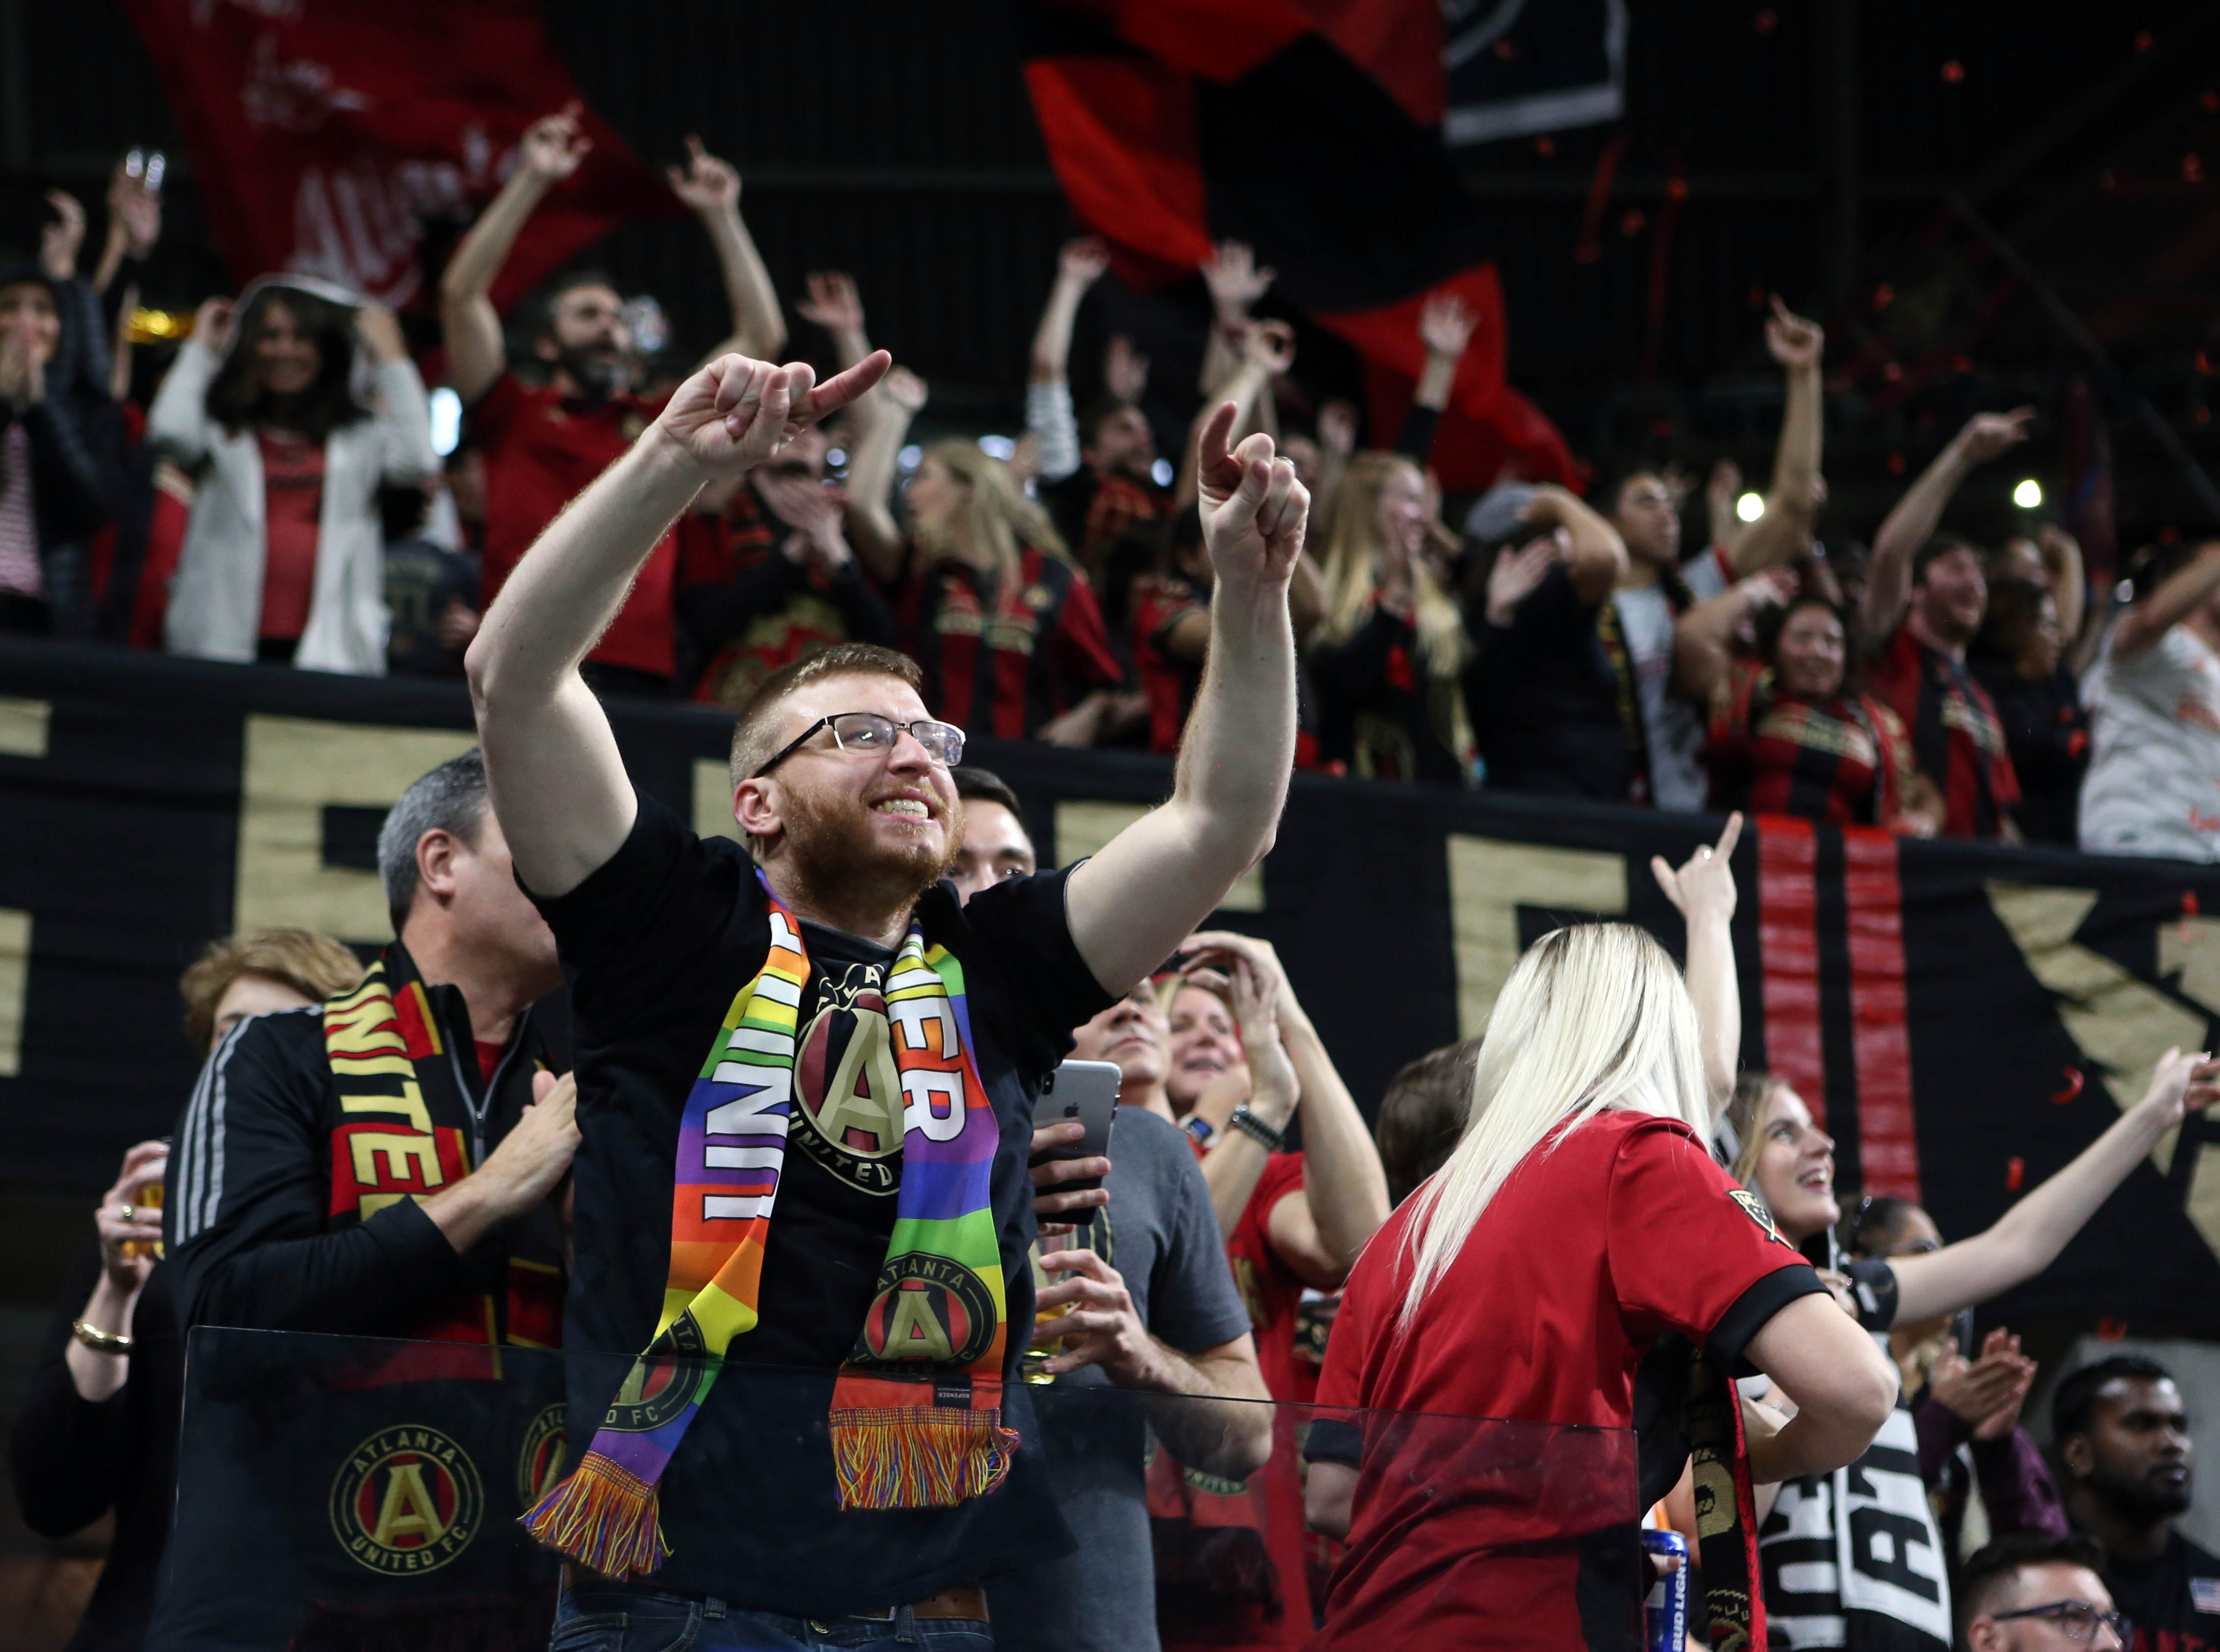 Atlanta fans celebrate after the Atlanta United defeated the Portland Timbers 2-0 to win the 2018 MLS Cup.